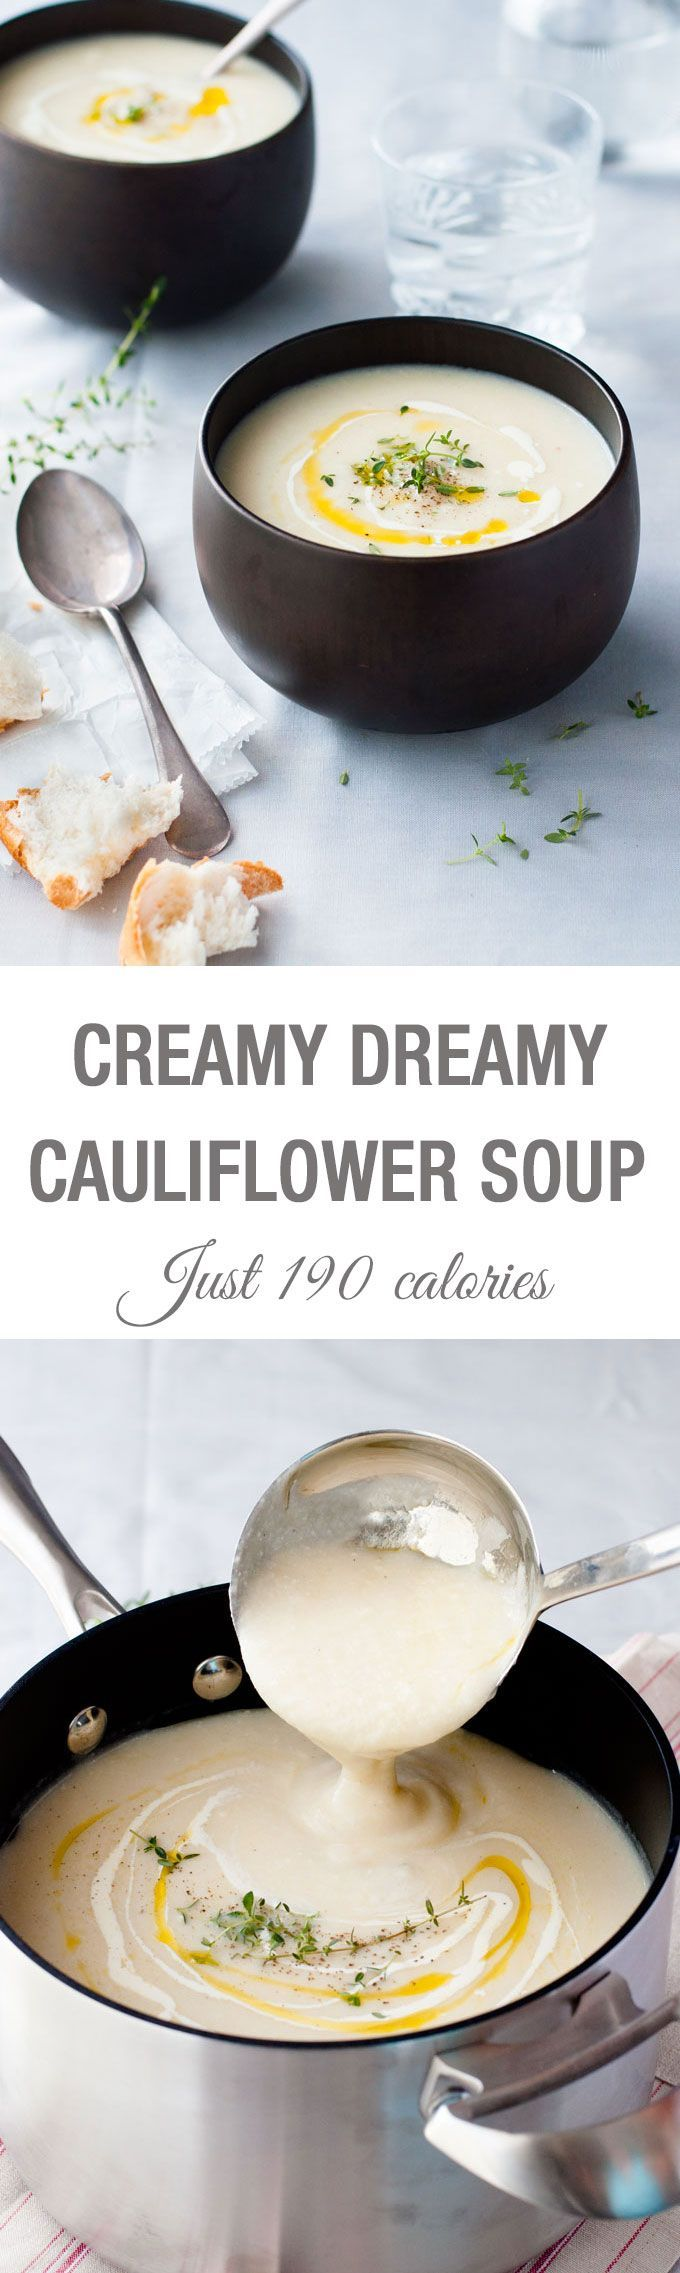 Creamy Dreamy Cauliflower Soup – just 190 calories for a BIG bowl, effortless to make and soooo creamy!